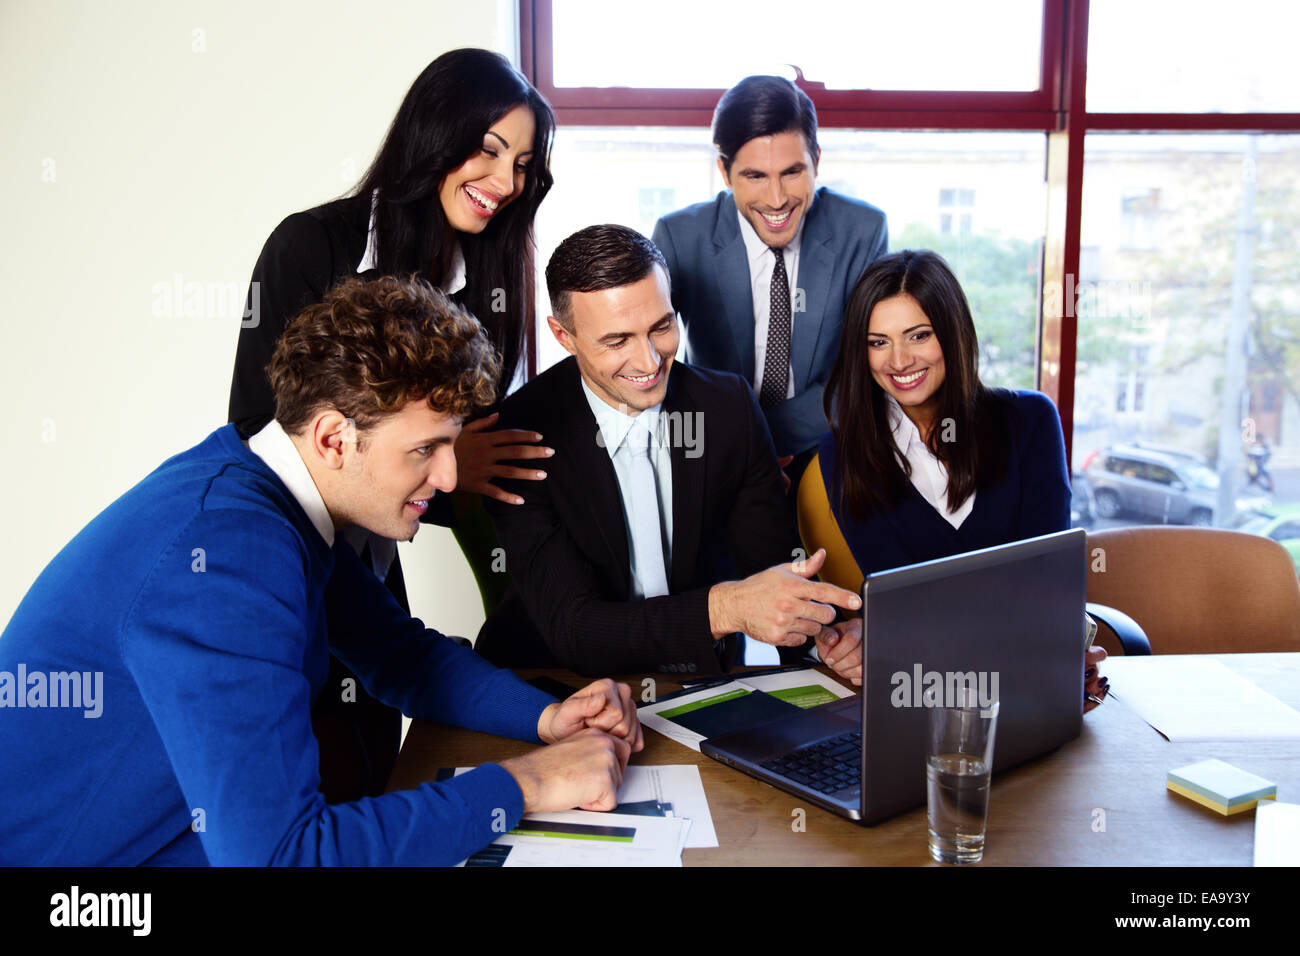 Happy businesspeople working in the office together - Stock Image